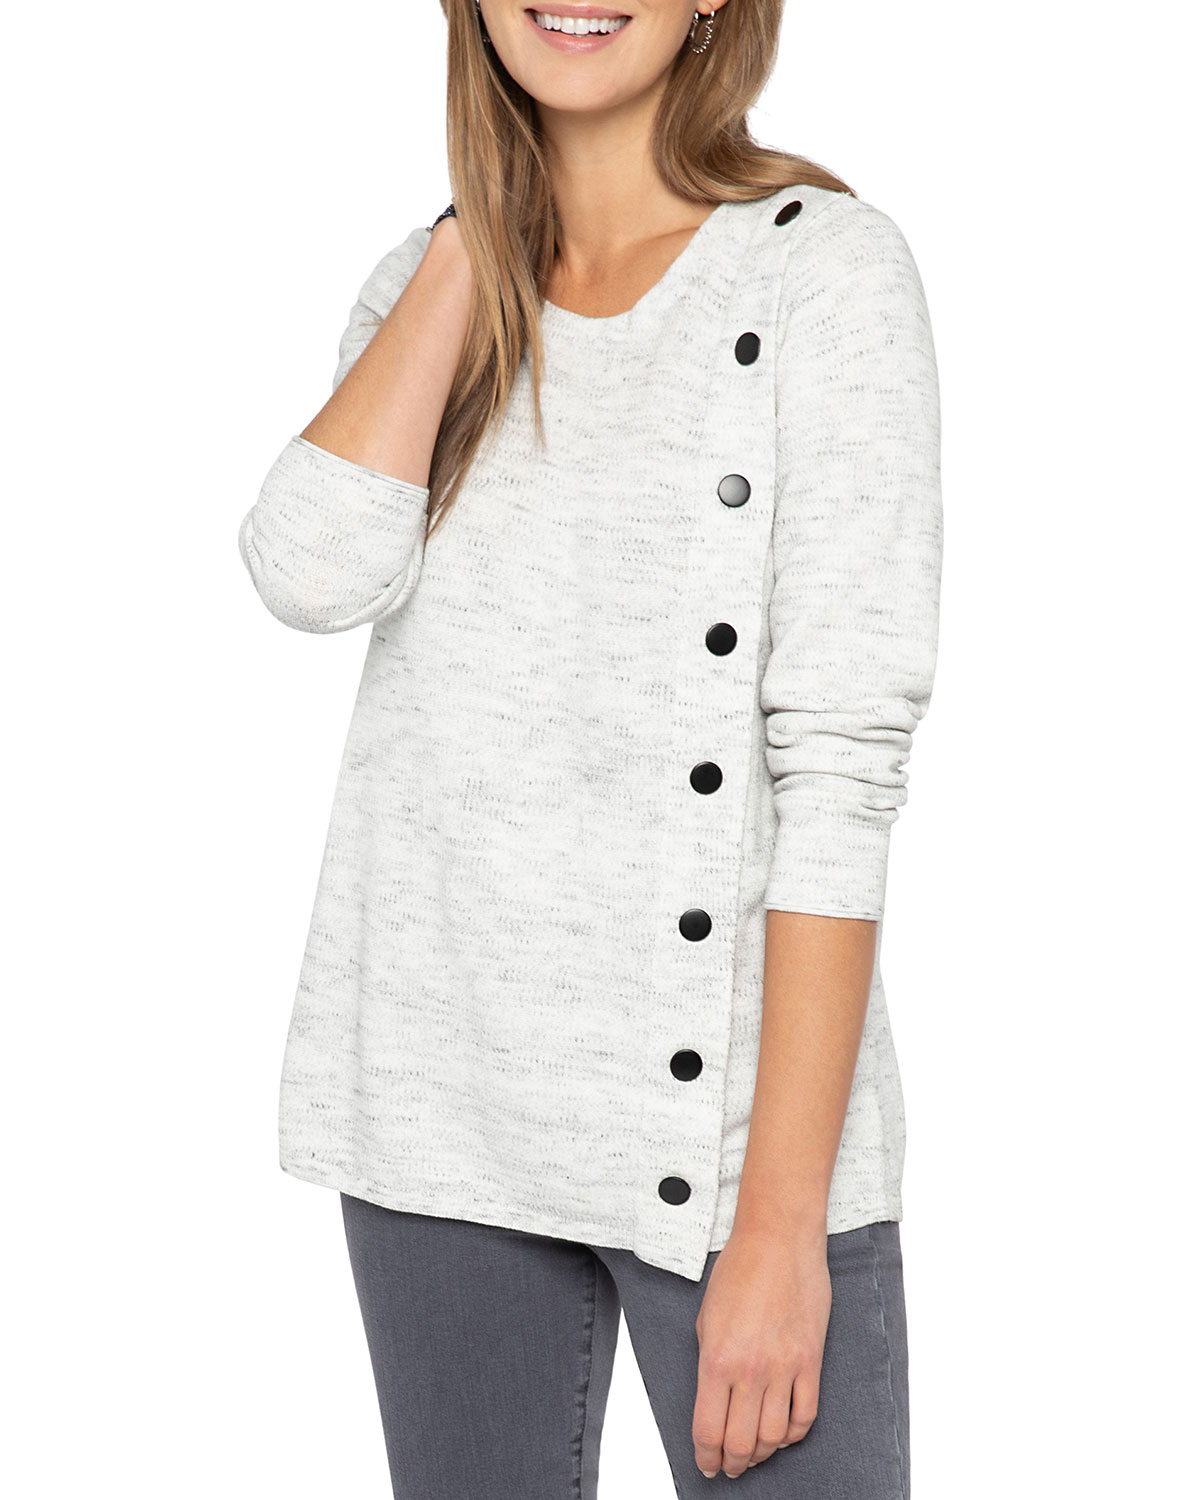 Nic + Zoe PLUS SIZE SIGN ME UP SWEATER